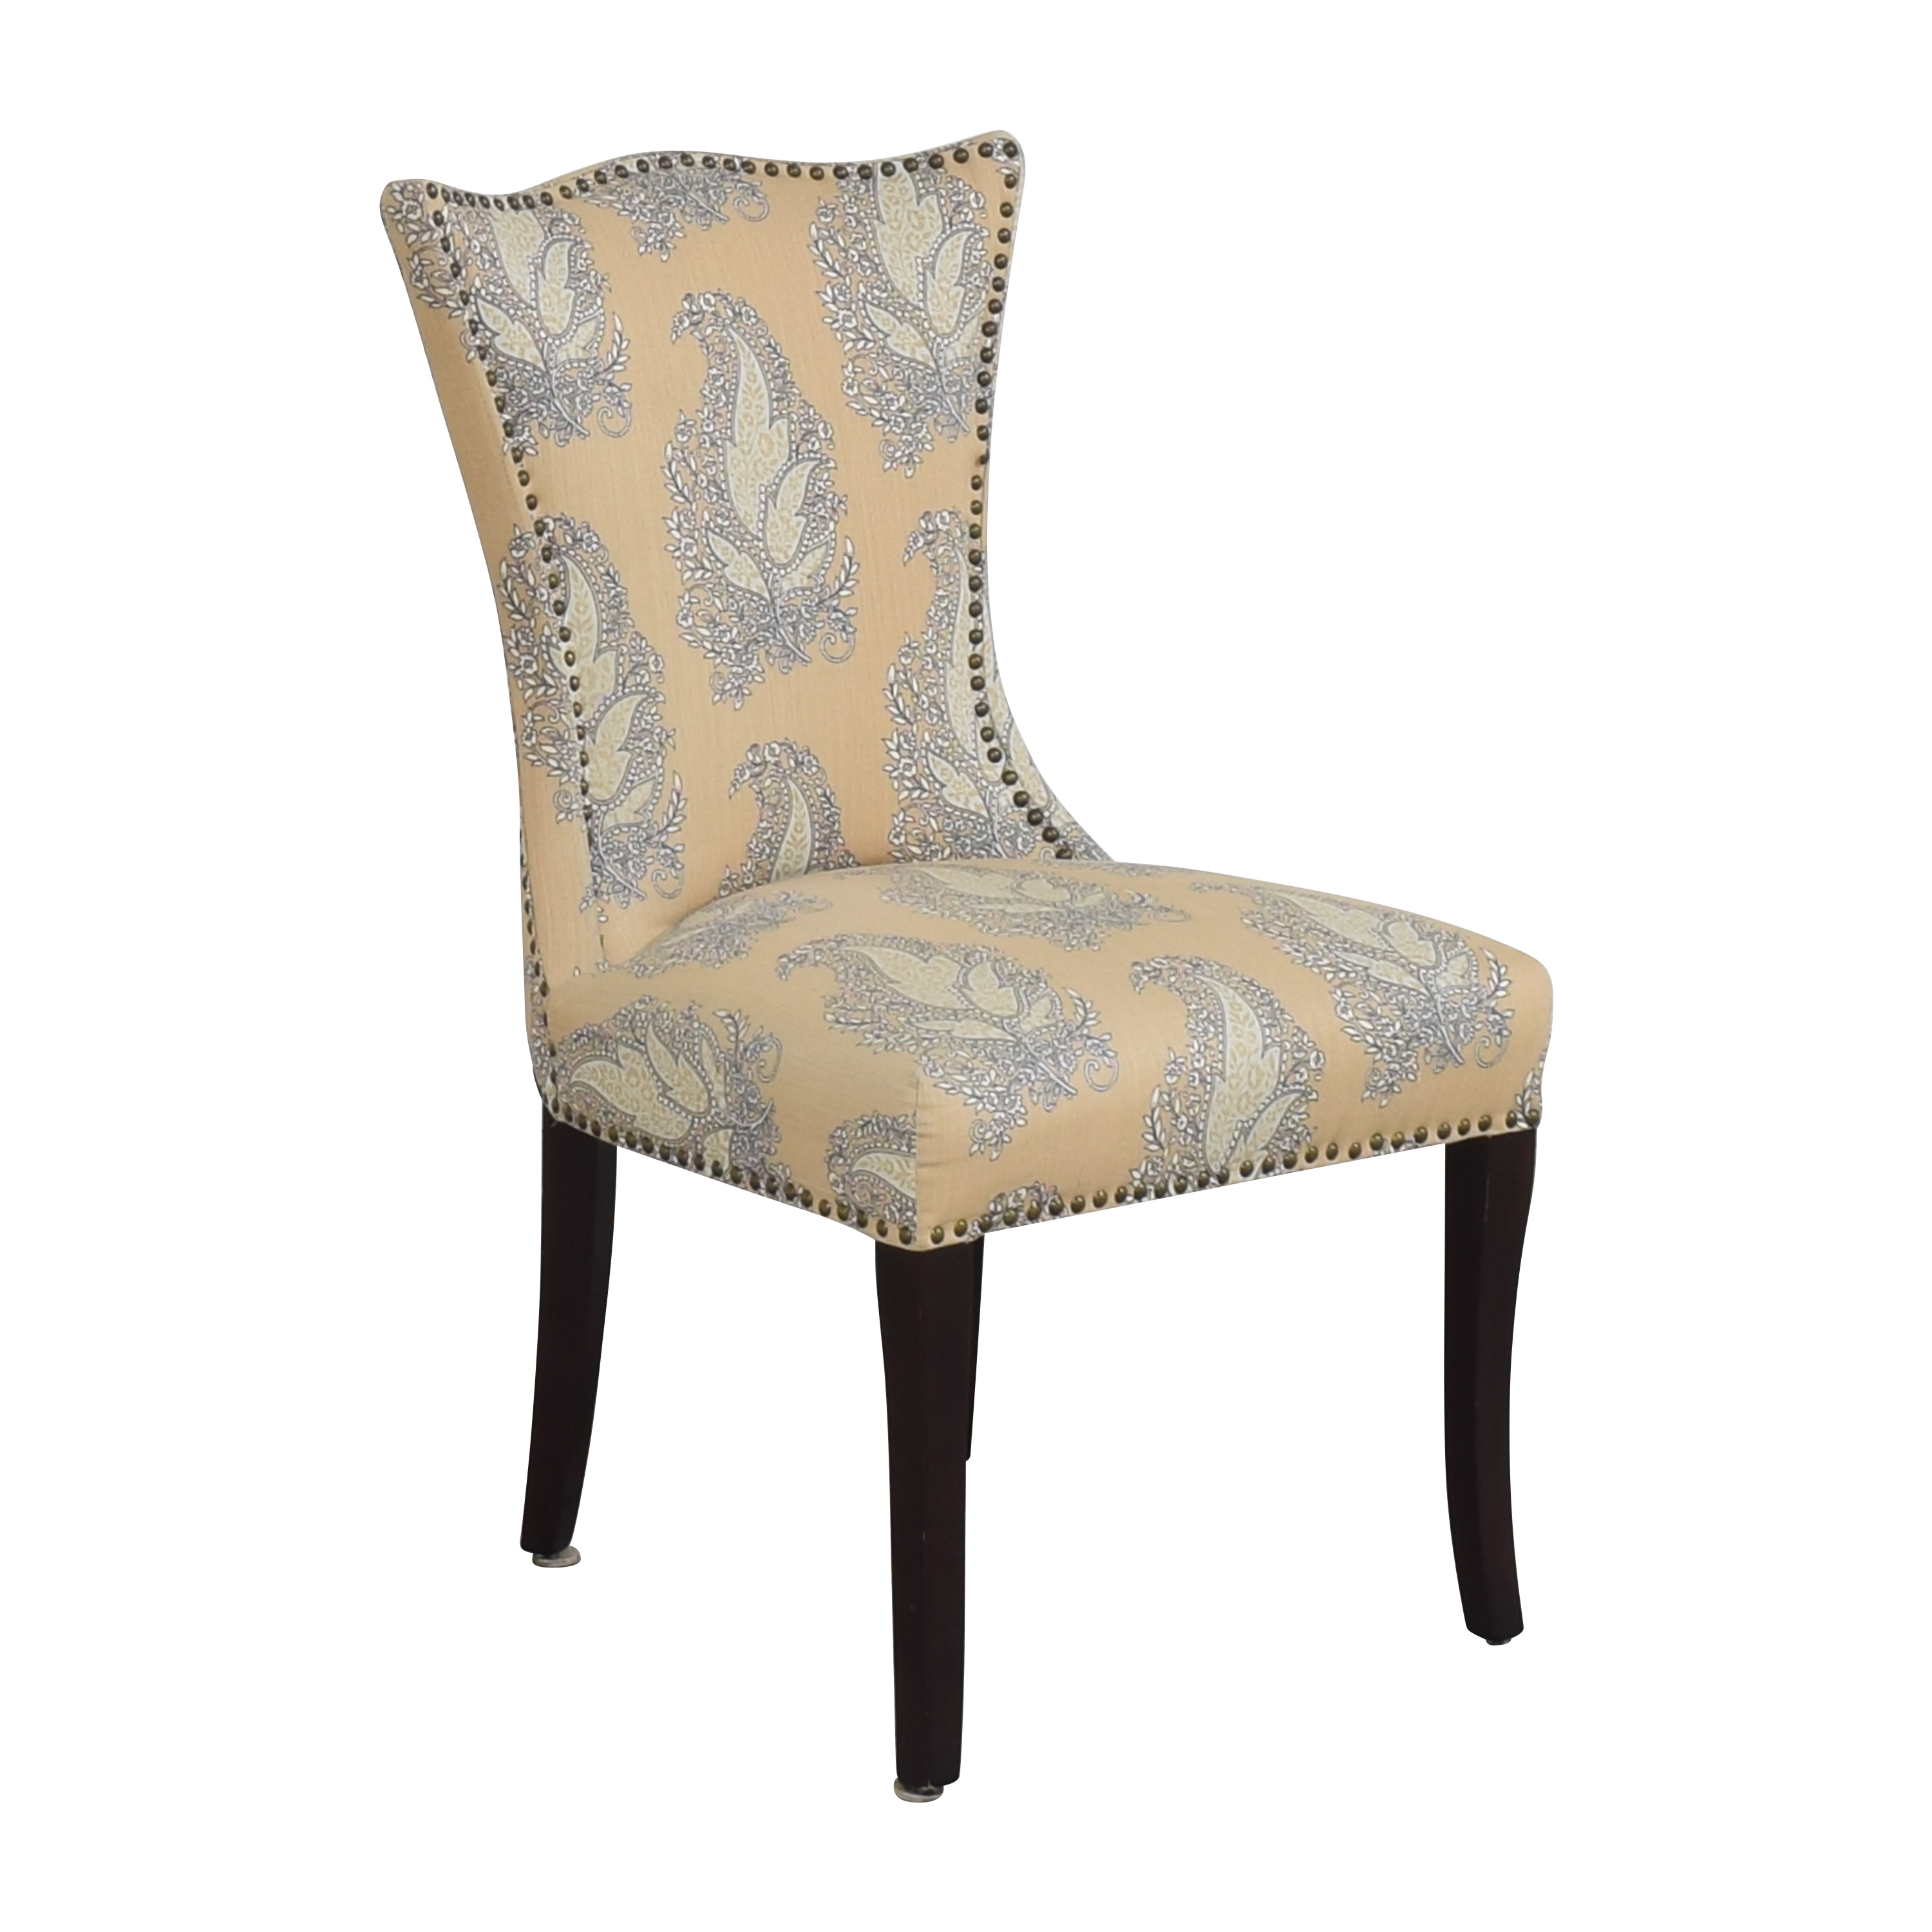 Pier 1 Nailhead Accent Chair / Dining Chairs